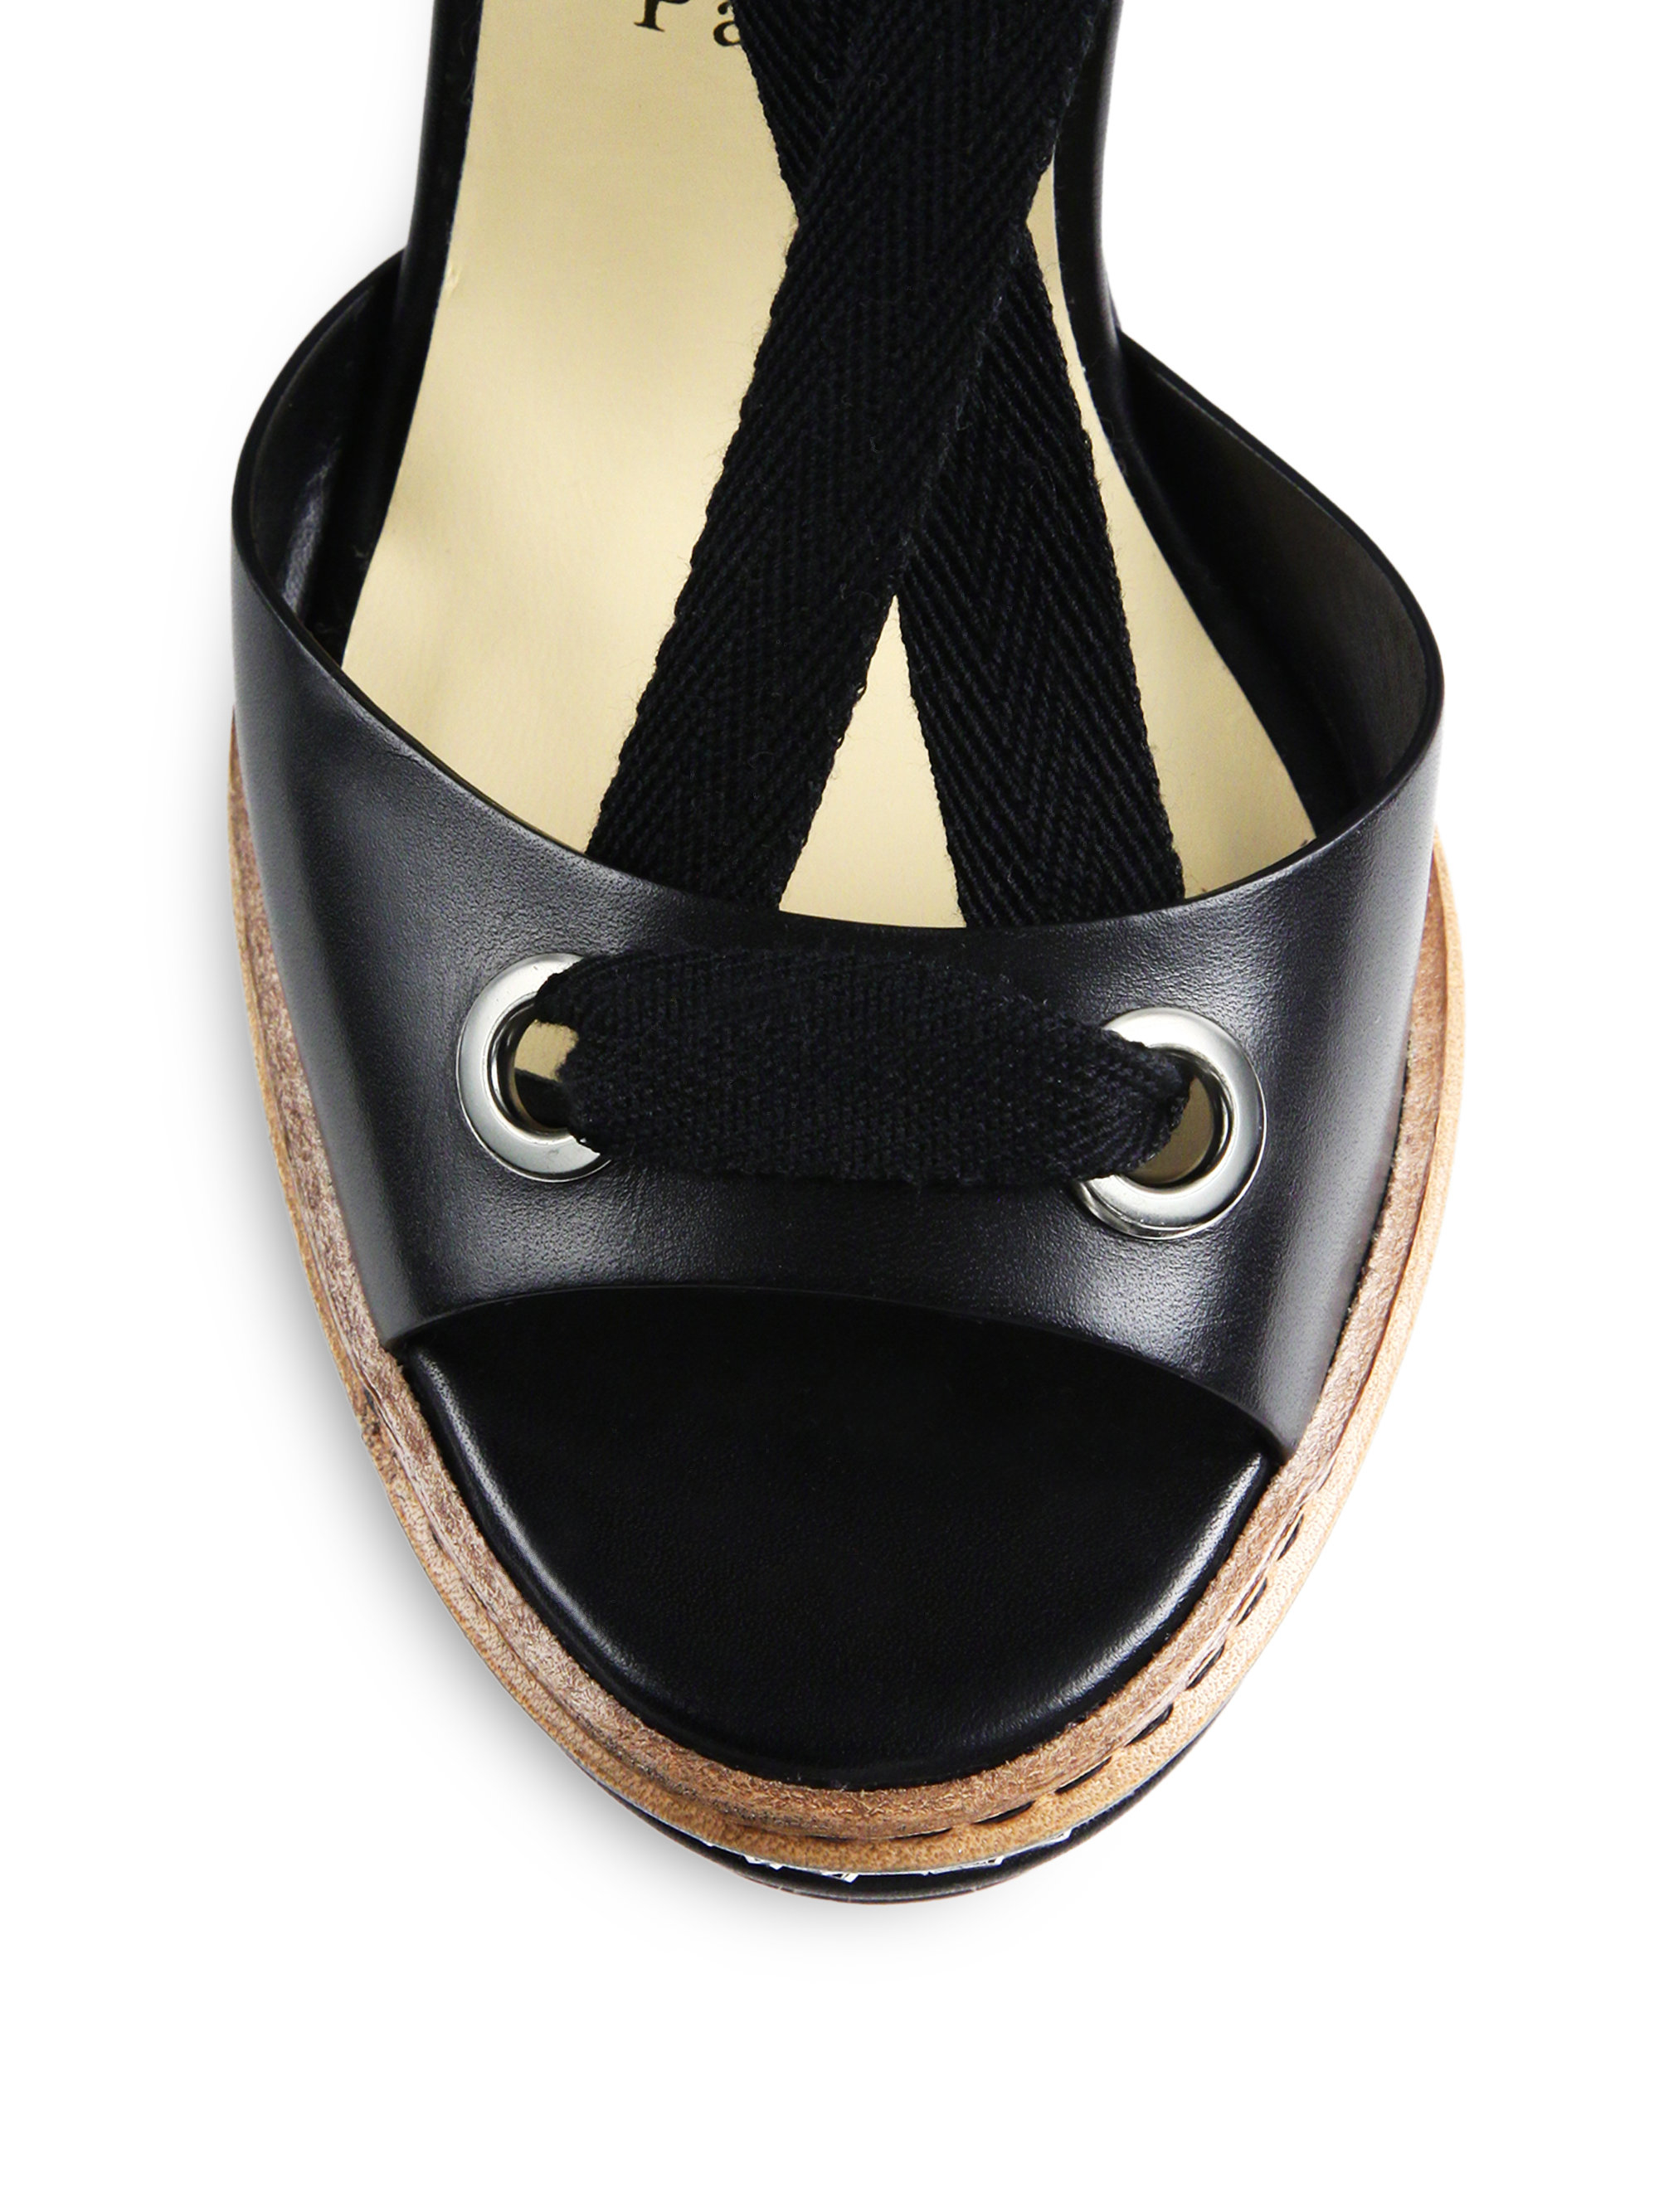 christian louboutin copy - christian louboutin slide espadrille wedges Black suede | The ...